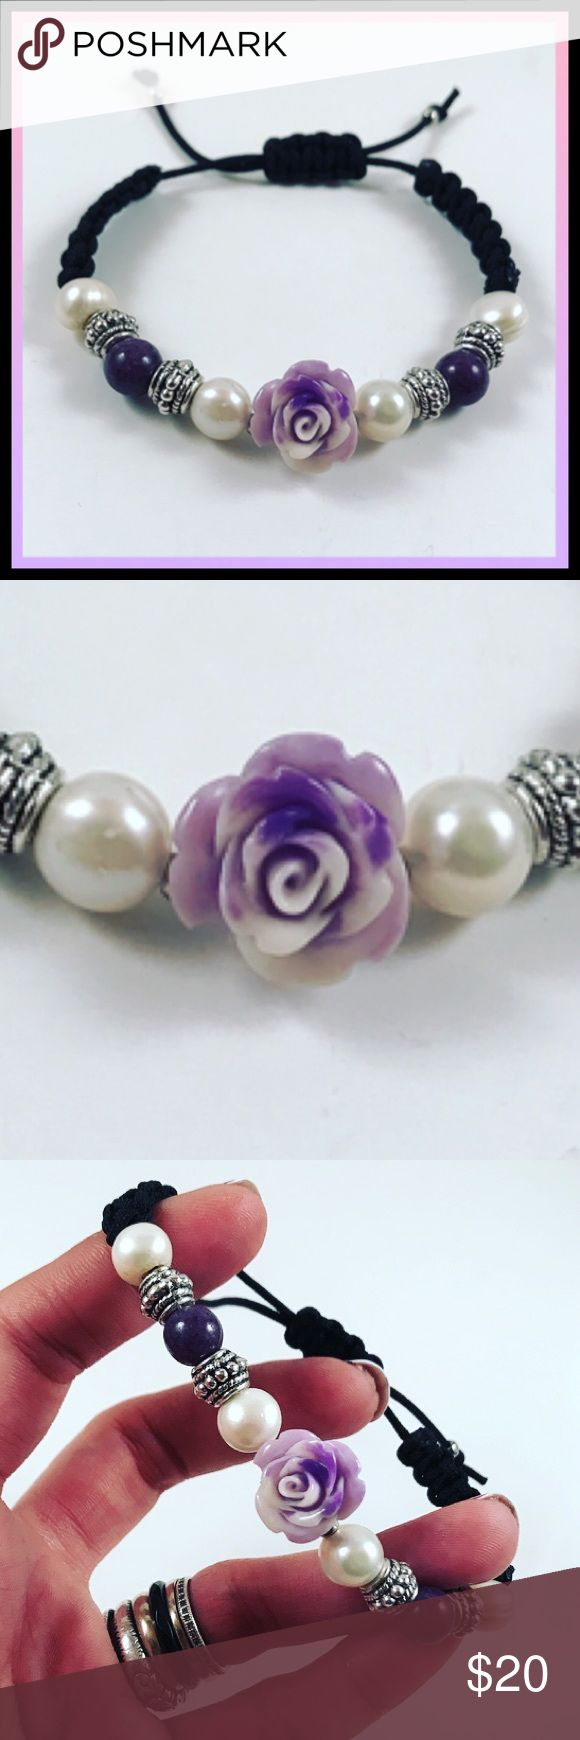 """women genuine pearl black & purple rose bracelet FREE GIFT WITH EVERY PURCHASE !! LET ME KNOW IF YOU WANT MEN OR WOMEN GIFT WHEN PURCHASING Women black silk macrame bracelet  . Fits any wrist / adjustable . Handmade by me. Genuine pearls . Silver plated deco spacers . Dyed purple and white turquoise rose charm .  I ship fast!✈️Bundle & save! . Any questions let me know ! No transactions outside Poshmark!!  2 for $25!! All Items marked with the fox """""""" emoji are 2 for $25 just bund"""